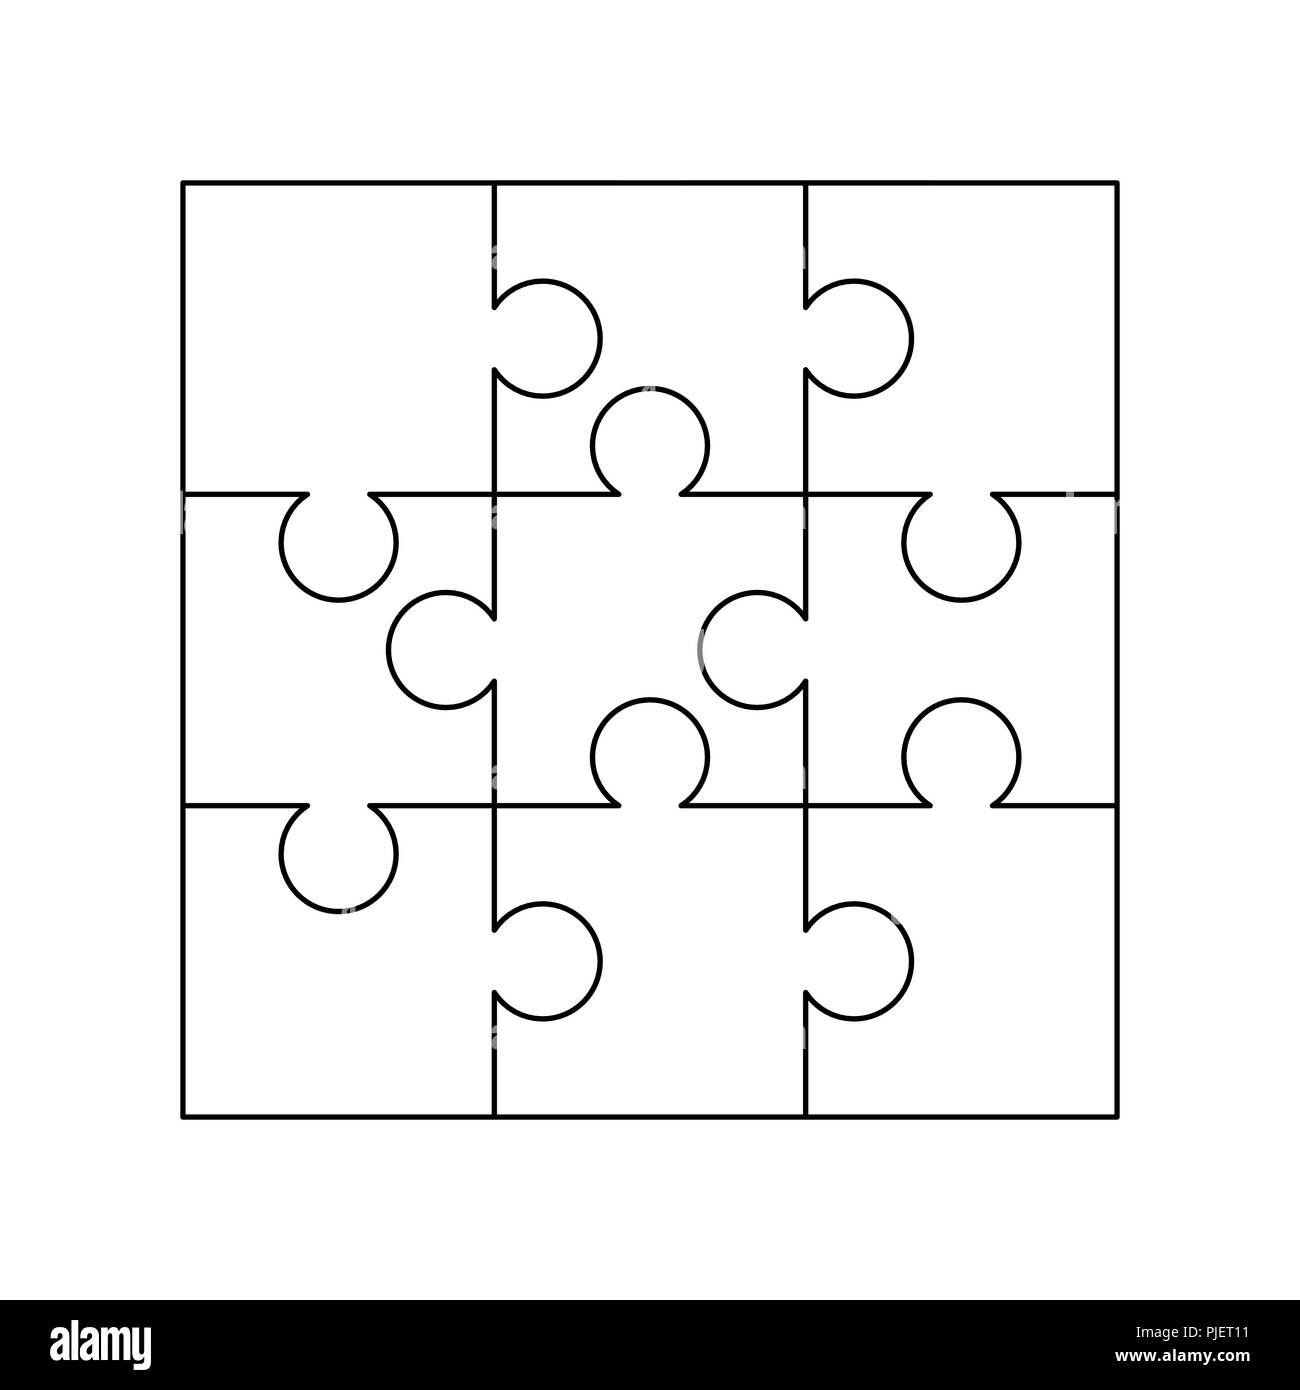 graphic regarding Printable Puzzle Template named 9 white puzzles parts structured within just a sq.. Jigsaw Puzzle